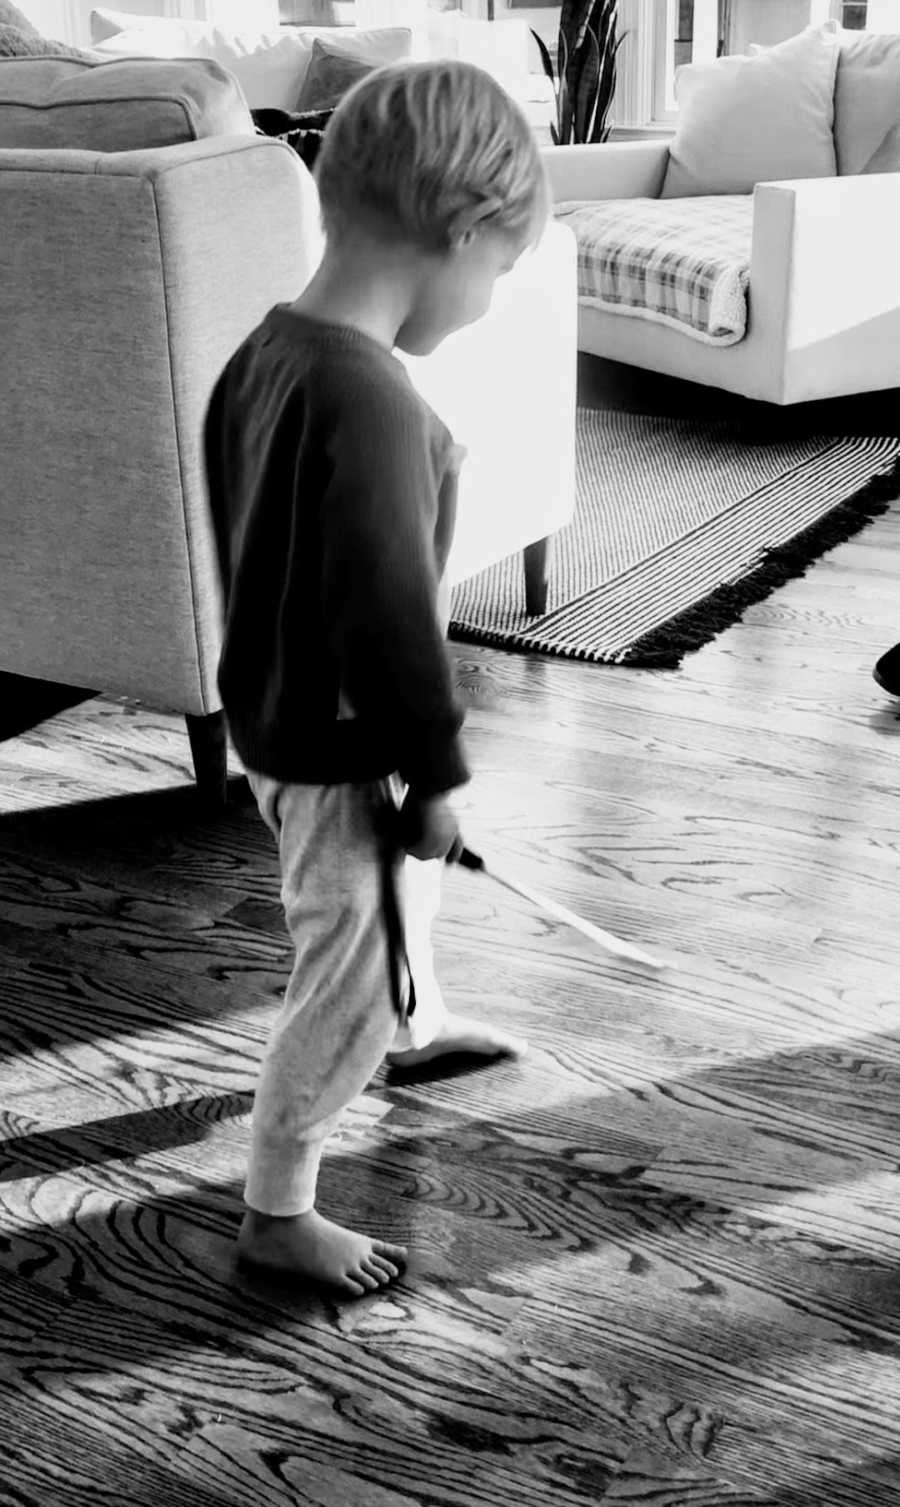 Black and white photo of young boy using walking stick